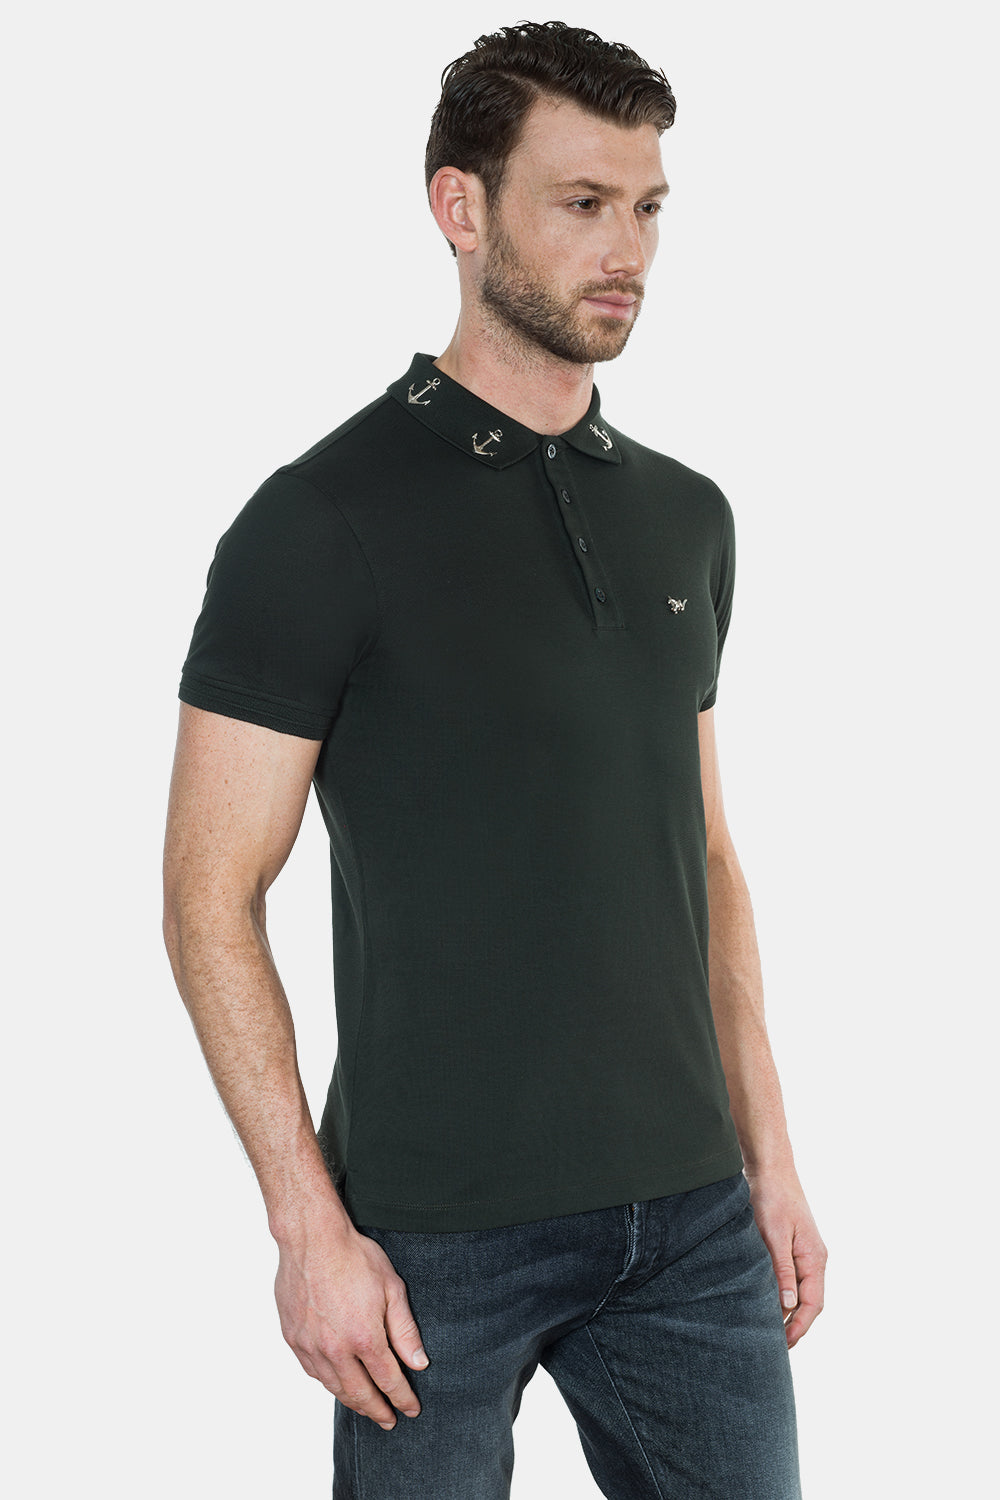 ANCHORS COLLAR POLO - DIMORAL OFFICIAL